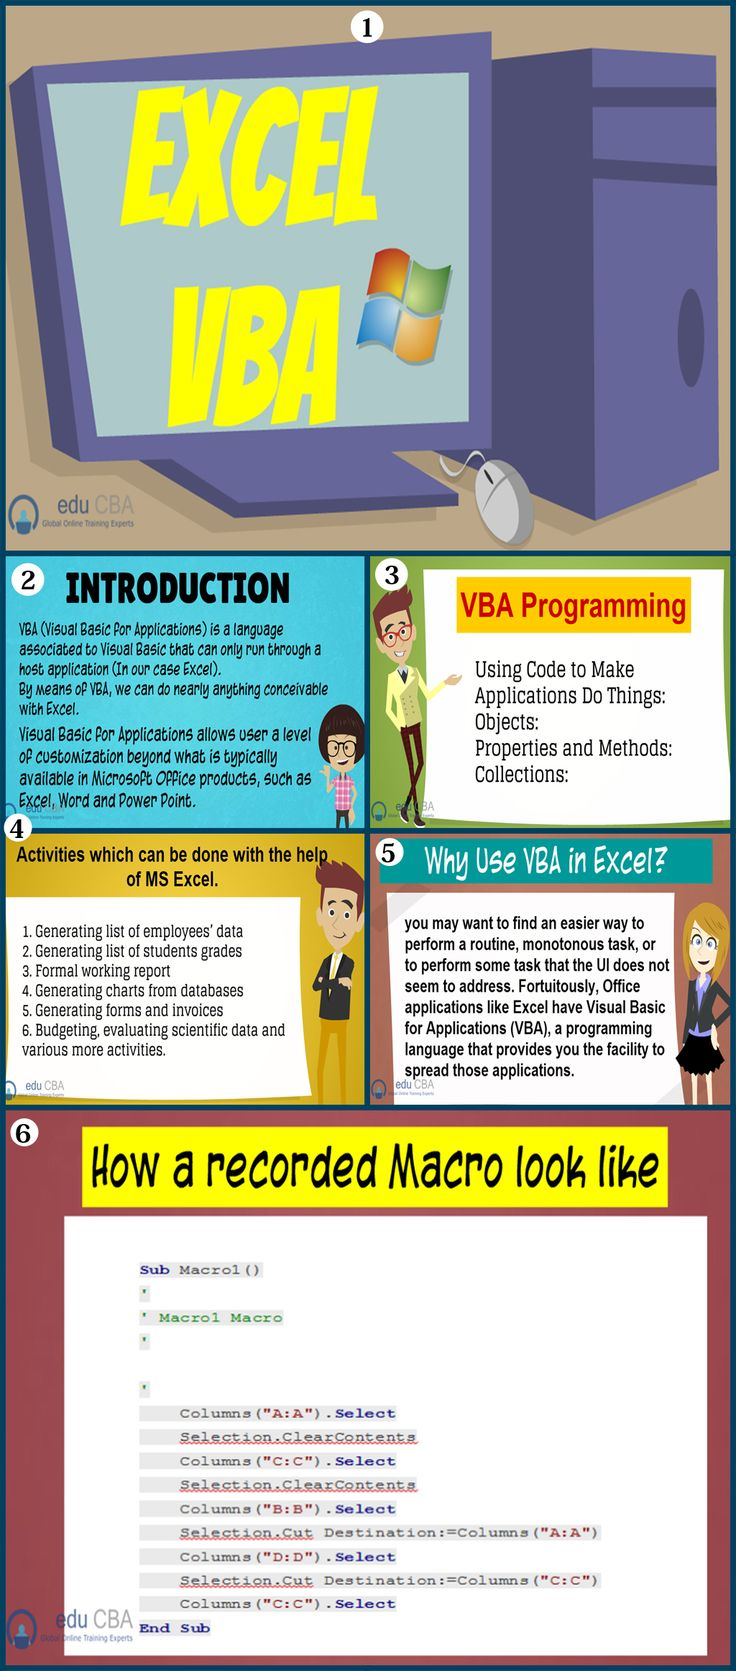 Name management vba - This Article On Vba Excel Gives You A Brief About The Use Of Vba In Excel And Also Some Steps To Record A Macro In Excel